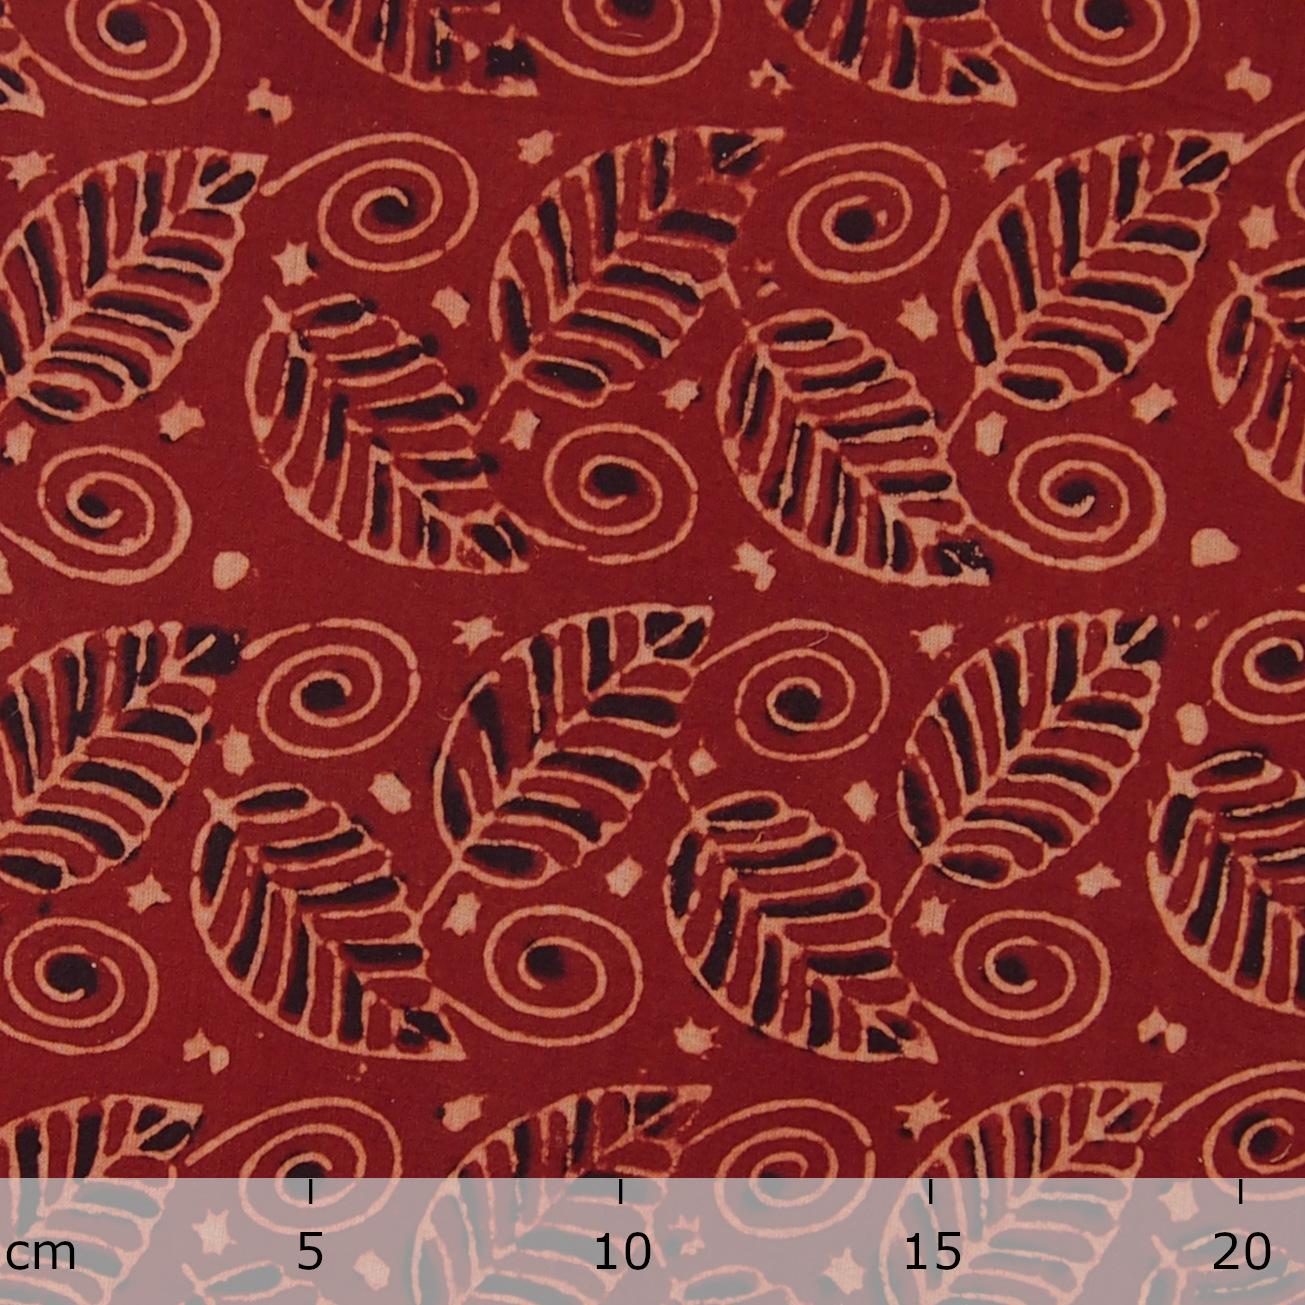 Block Printed Fabric, 100% Cotton, Ajrak Design: Red Madder Root Base, Black, Beige Foliage. Ruler, Sold Out